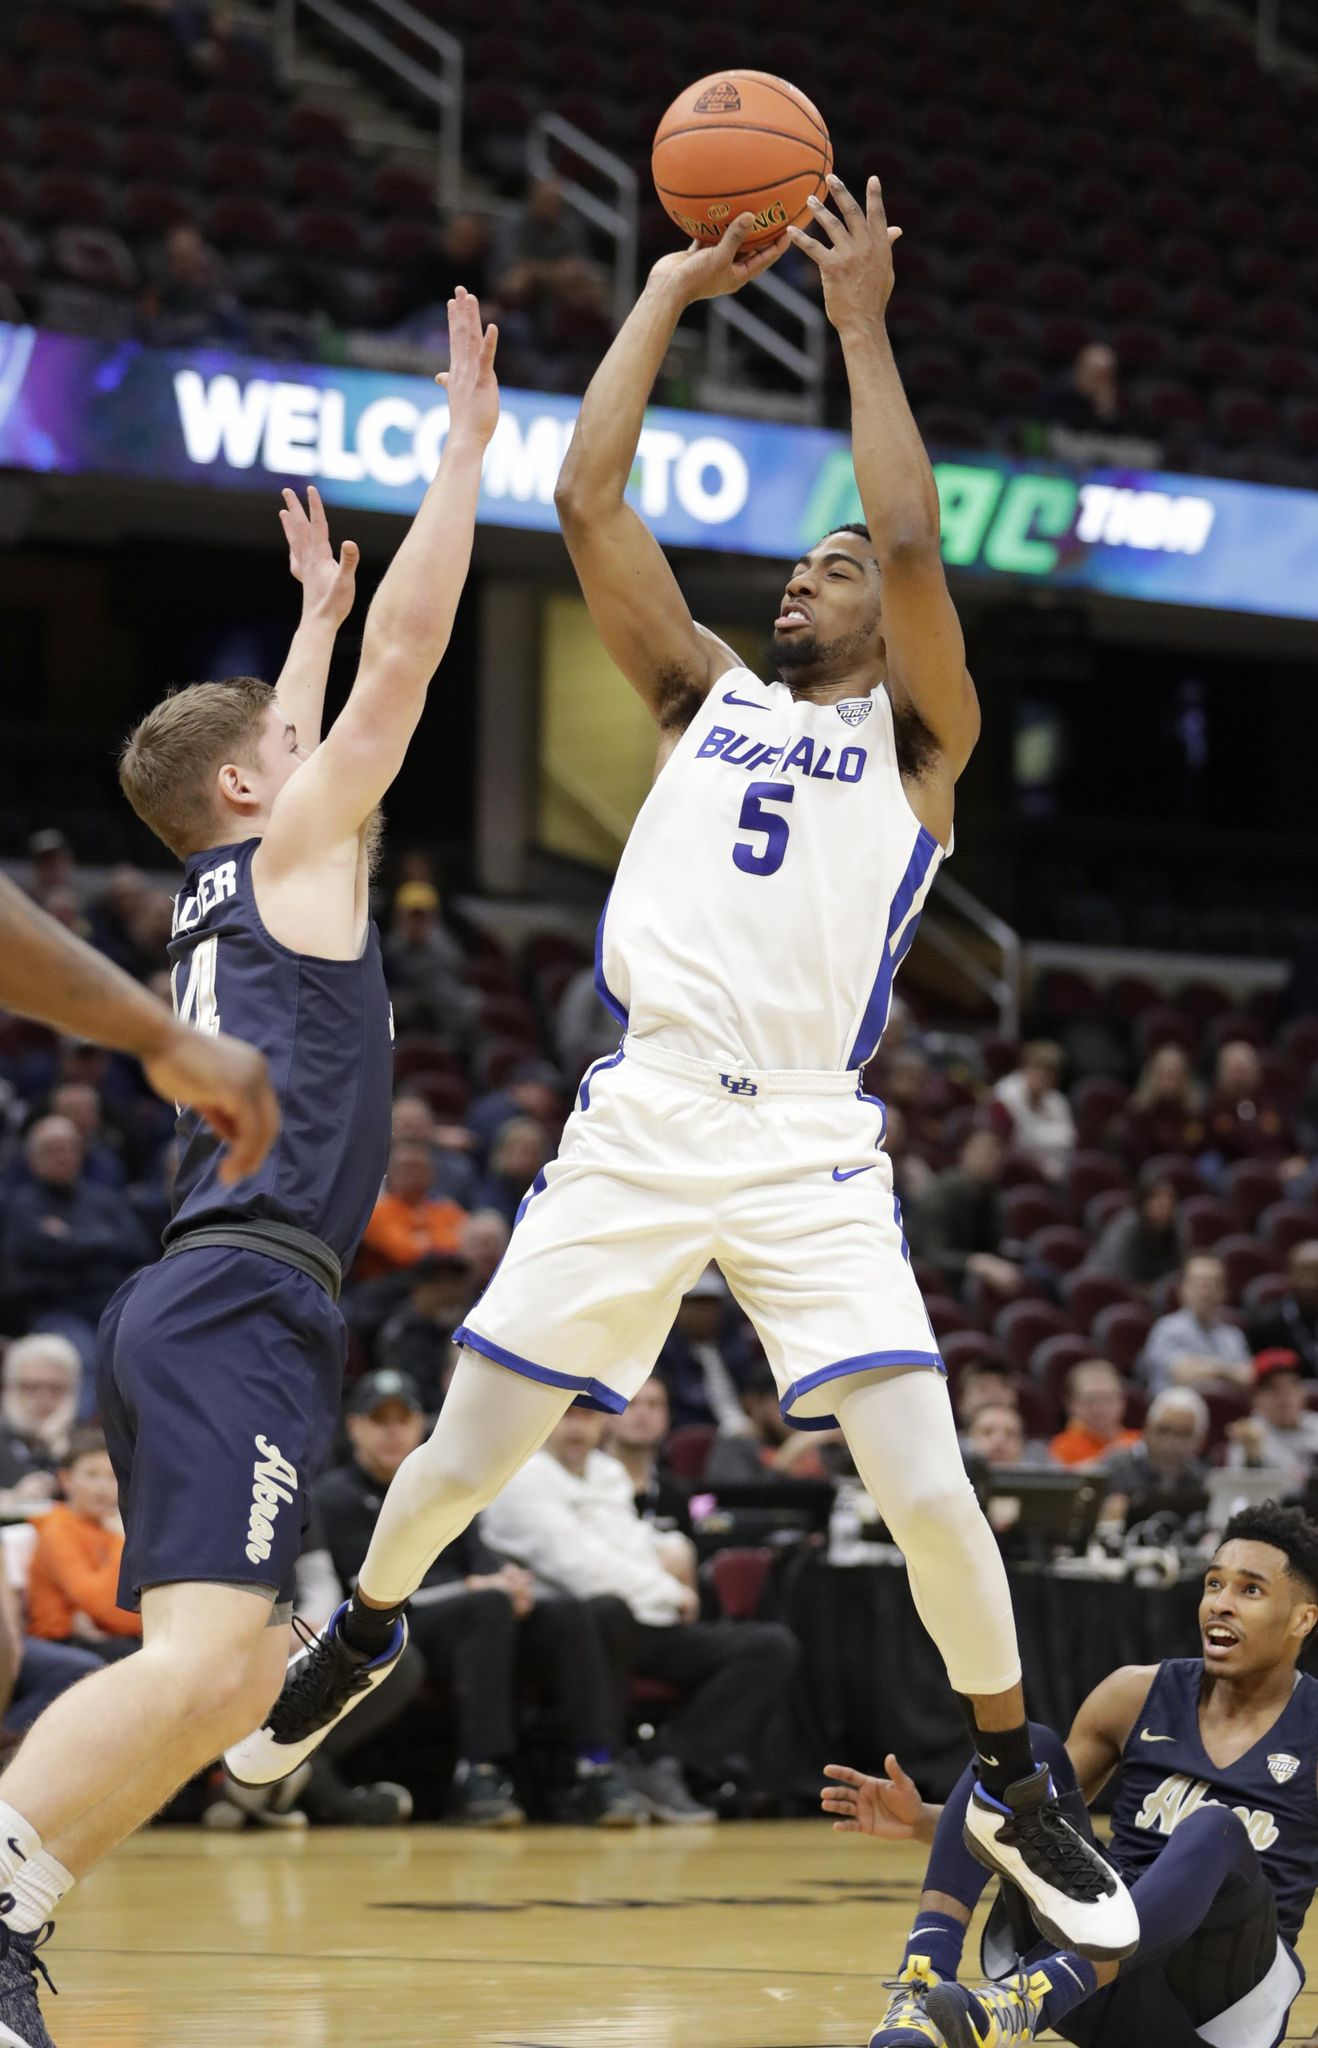 Ncaa_west_region_preview_basketball_54957_s1318x2048